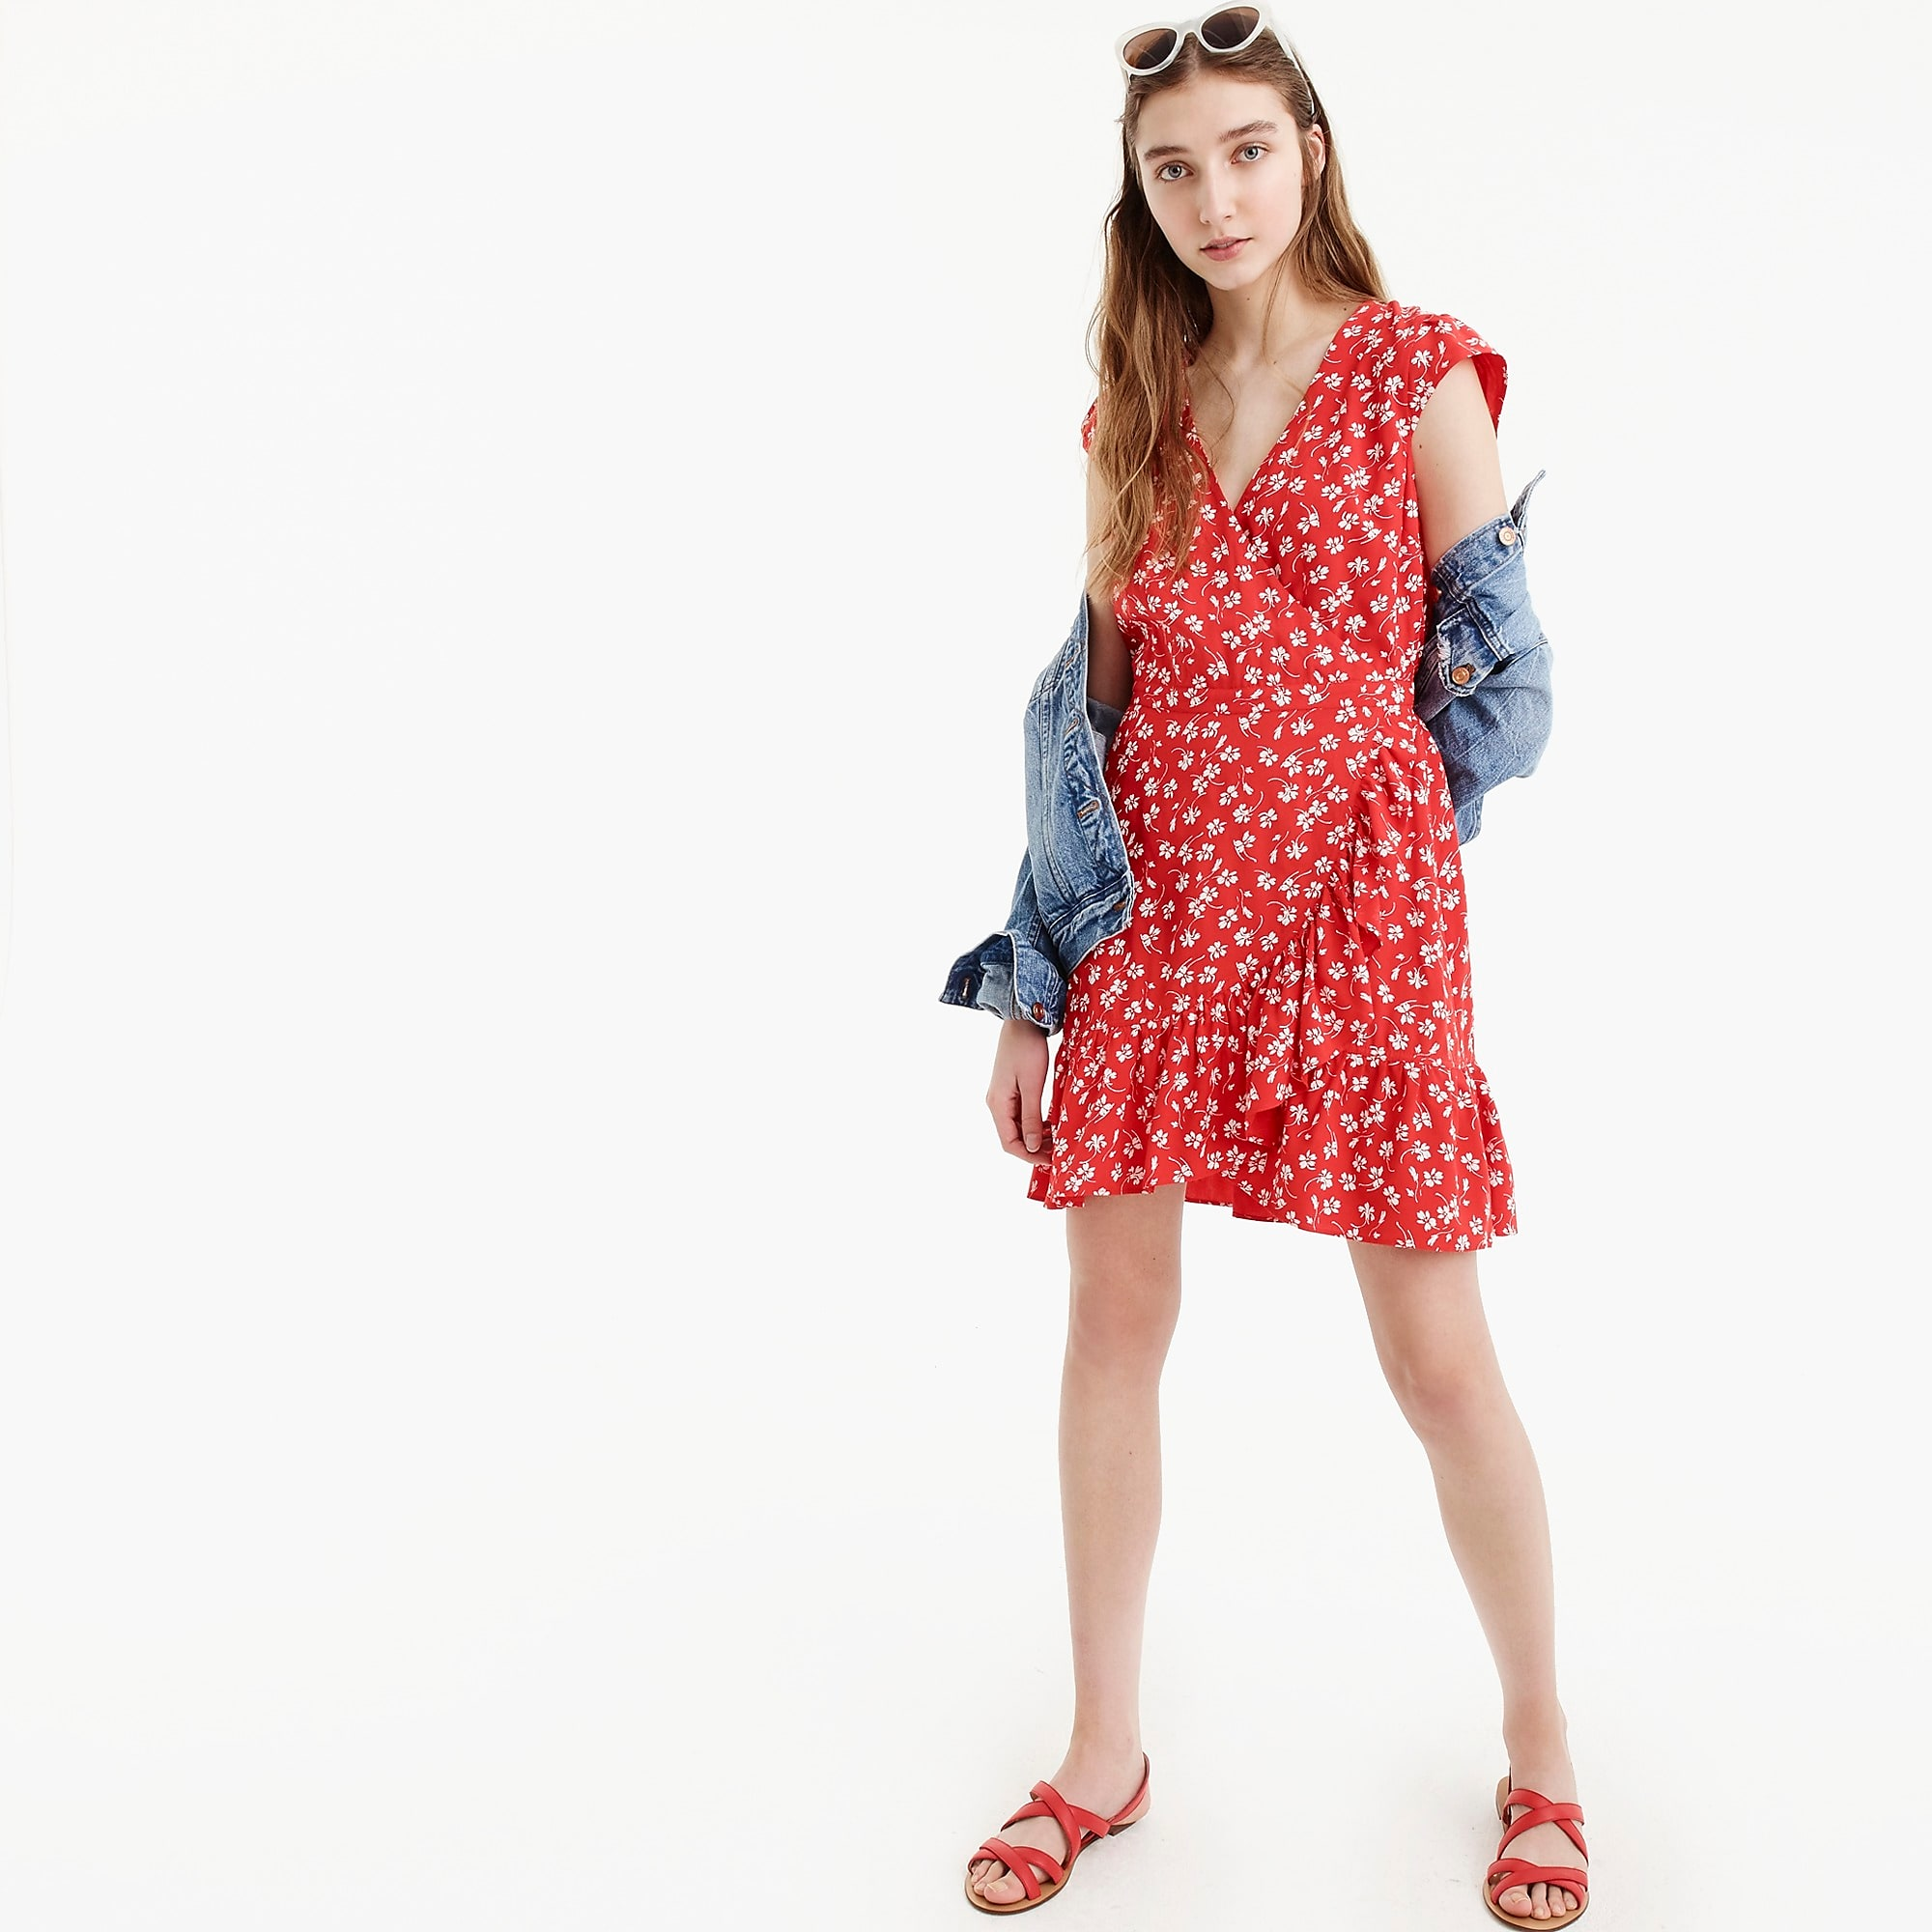 Memorial Day Sales J.Crew: 40% off all purchases with code GETAWAY